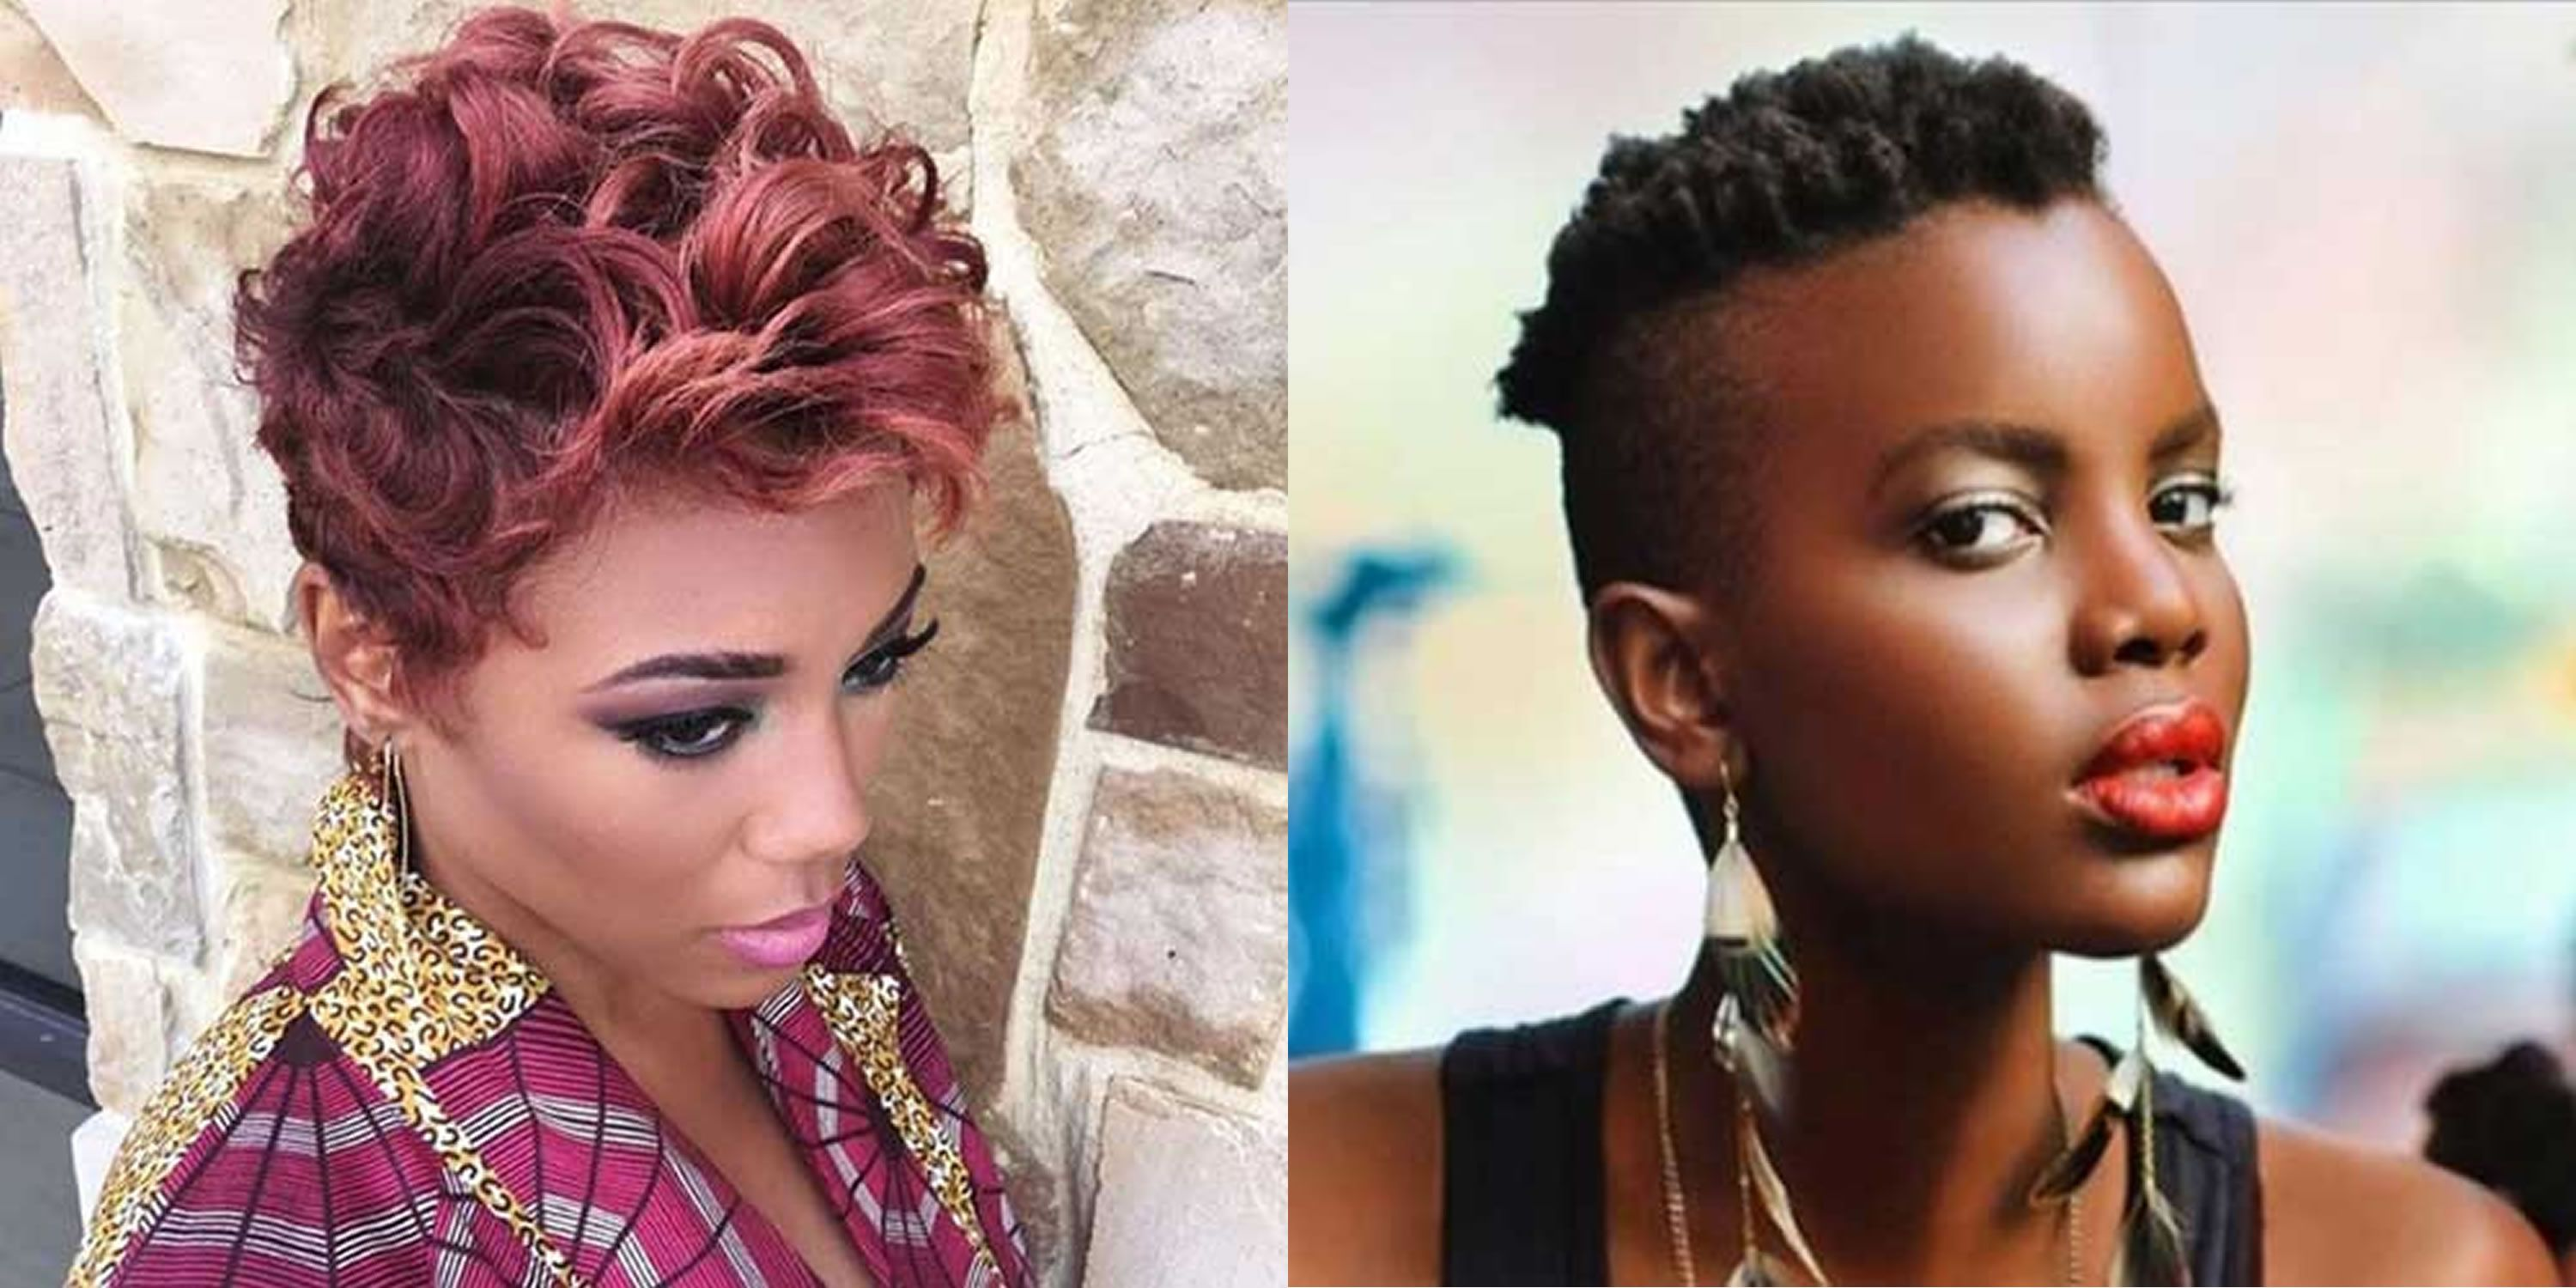 Pixie Haircuts For Black Women In 2020 2021 In 2020 Short Hair Images Pixie Haircut Short Pixie Haircuts